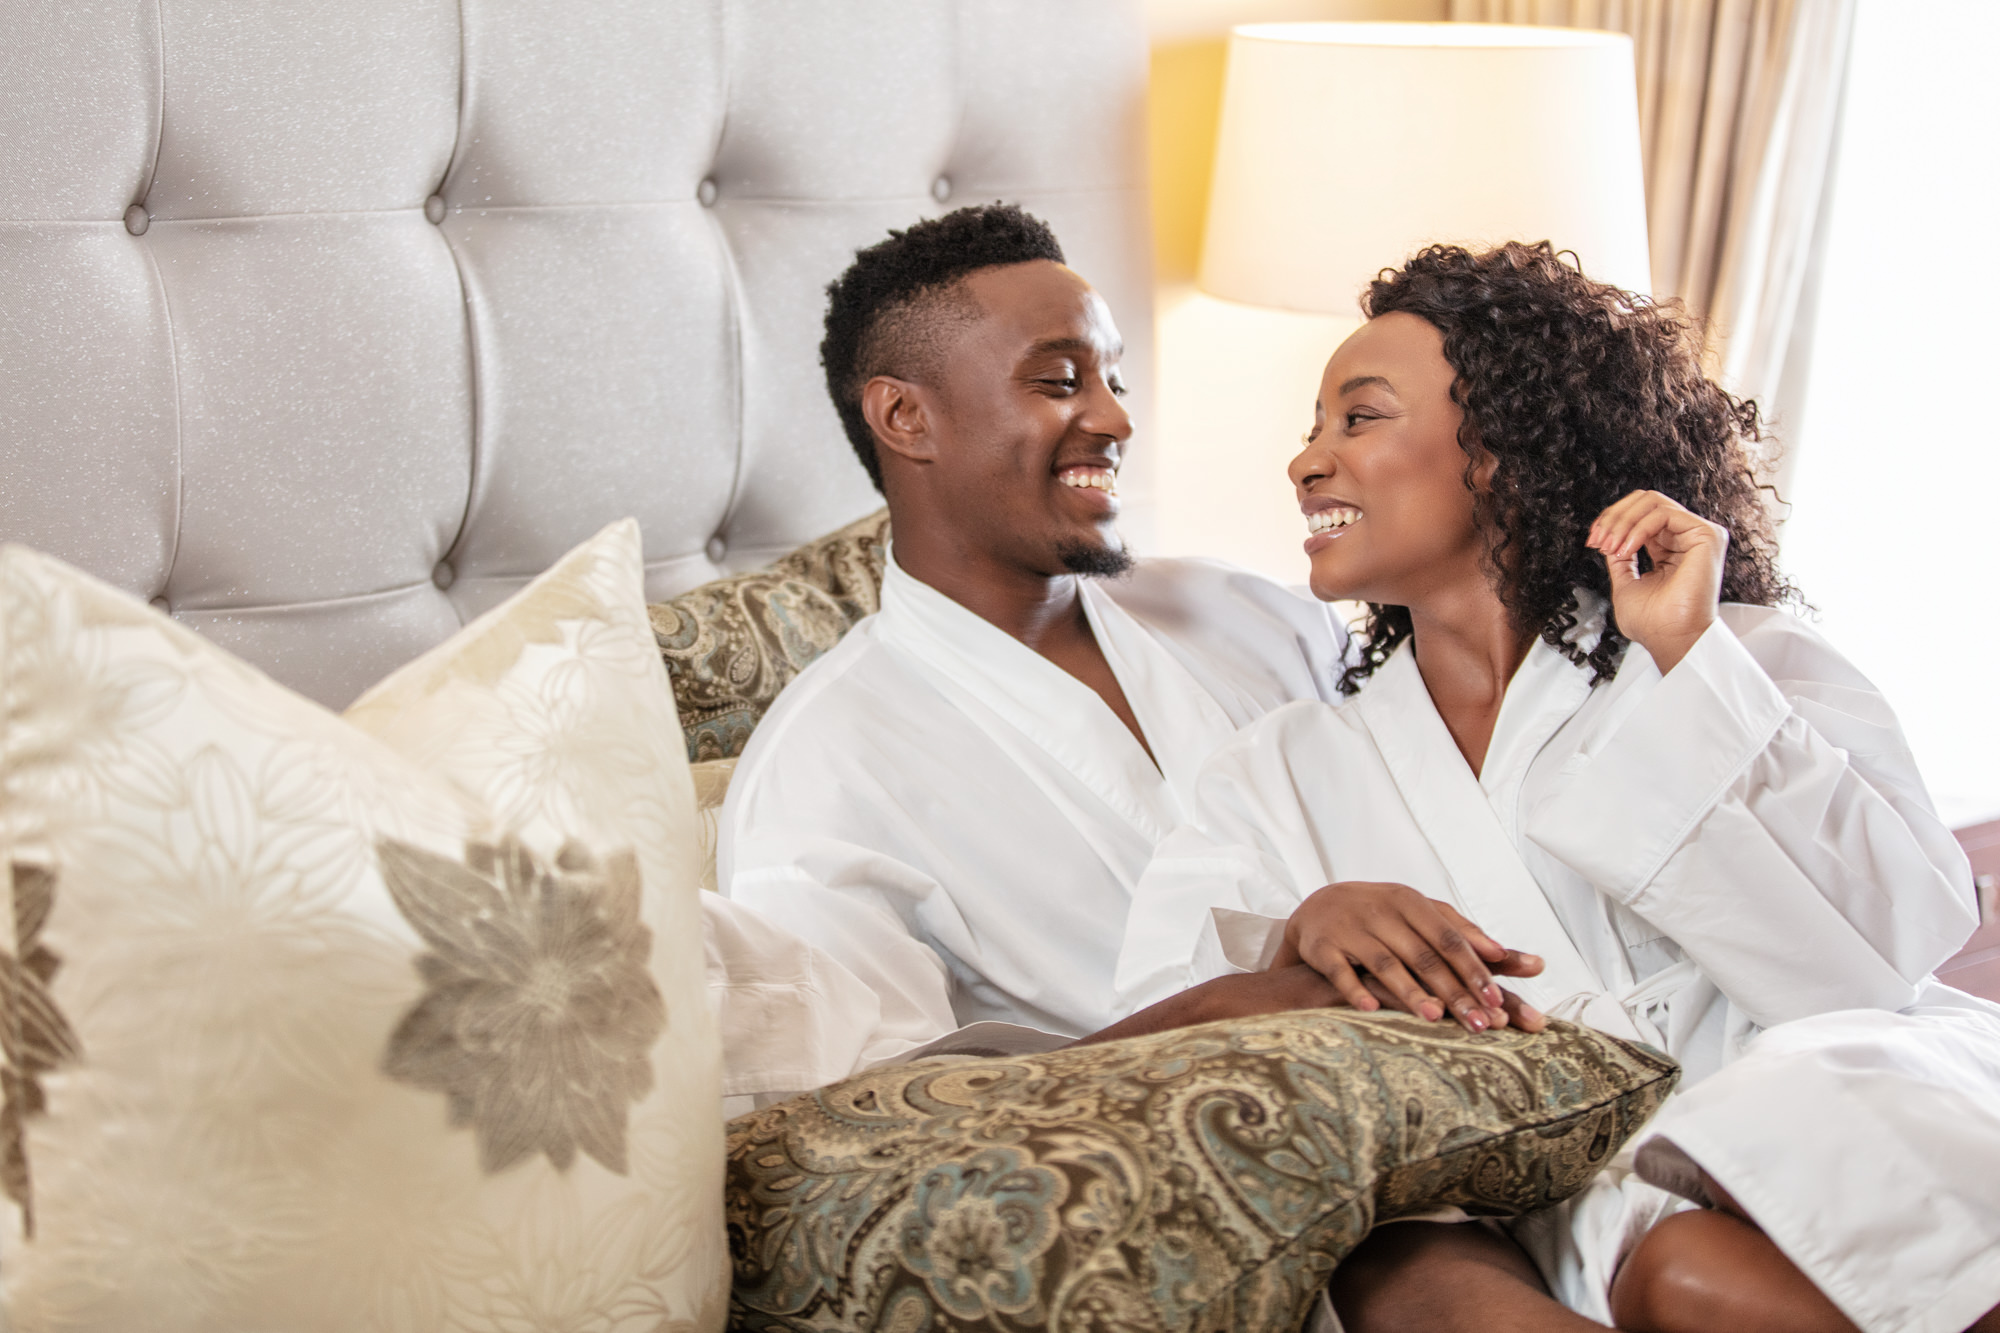 Image of man and Woman in a hotel suite at the Beverly Hills Hotel in uMhlanga Rocks, Durban for  Tsogo Sun's Image Library & Content Library by Michelle Wastie Photography